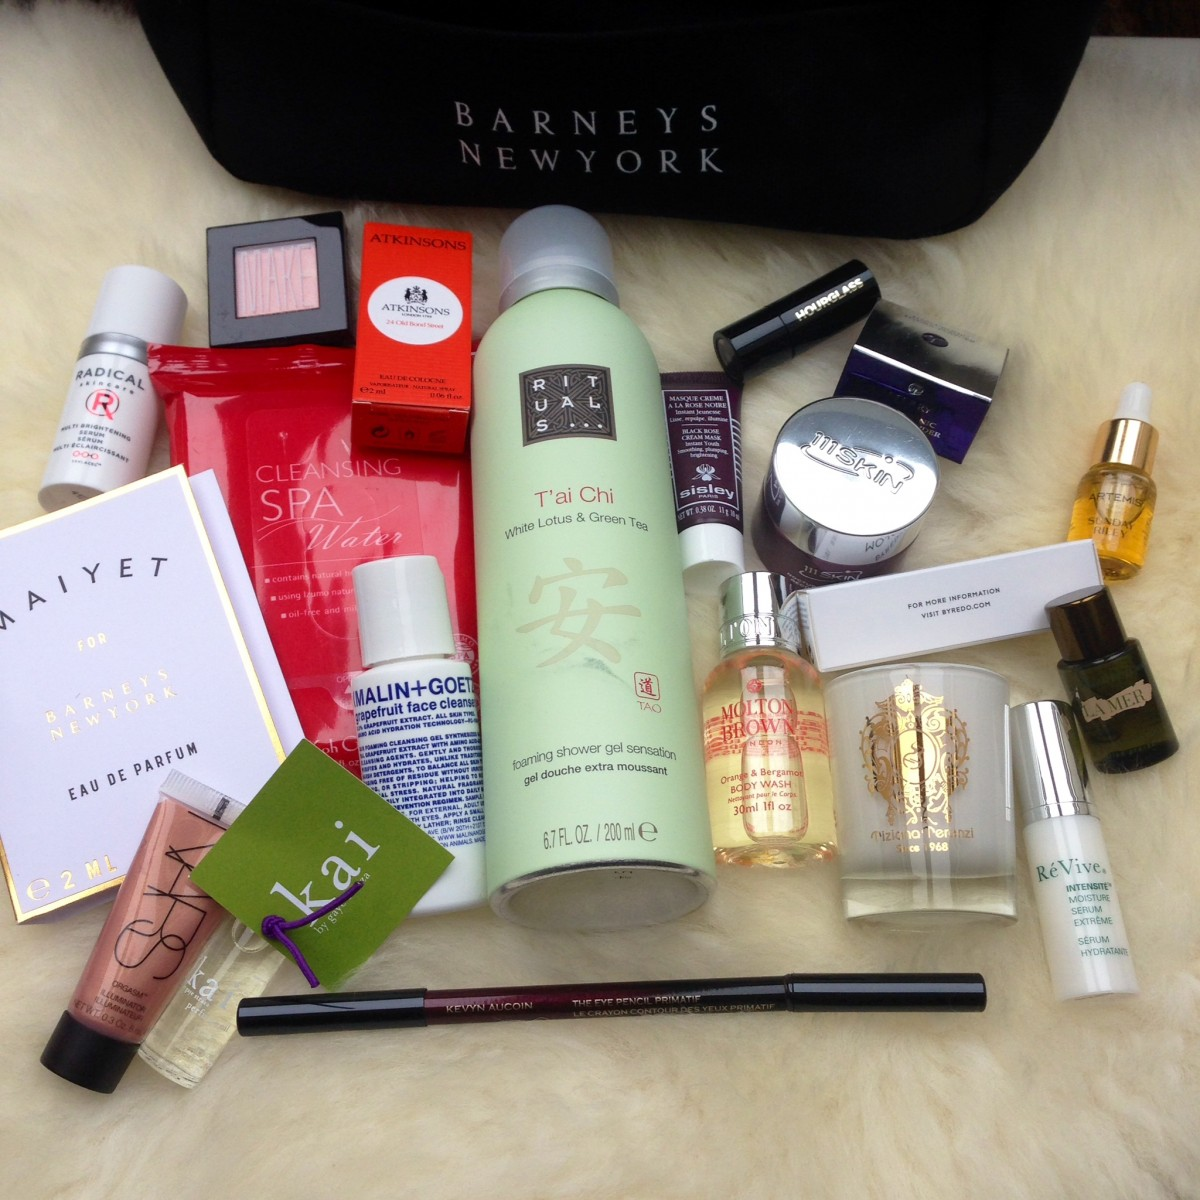 Barney's September Love Yourself Beauty Event Gift With Purchase